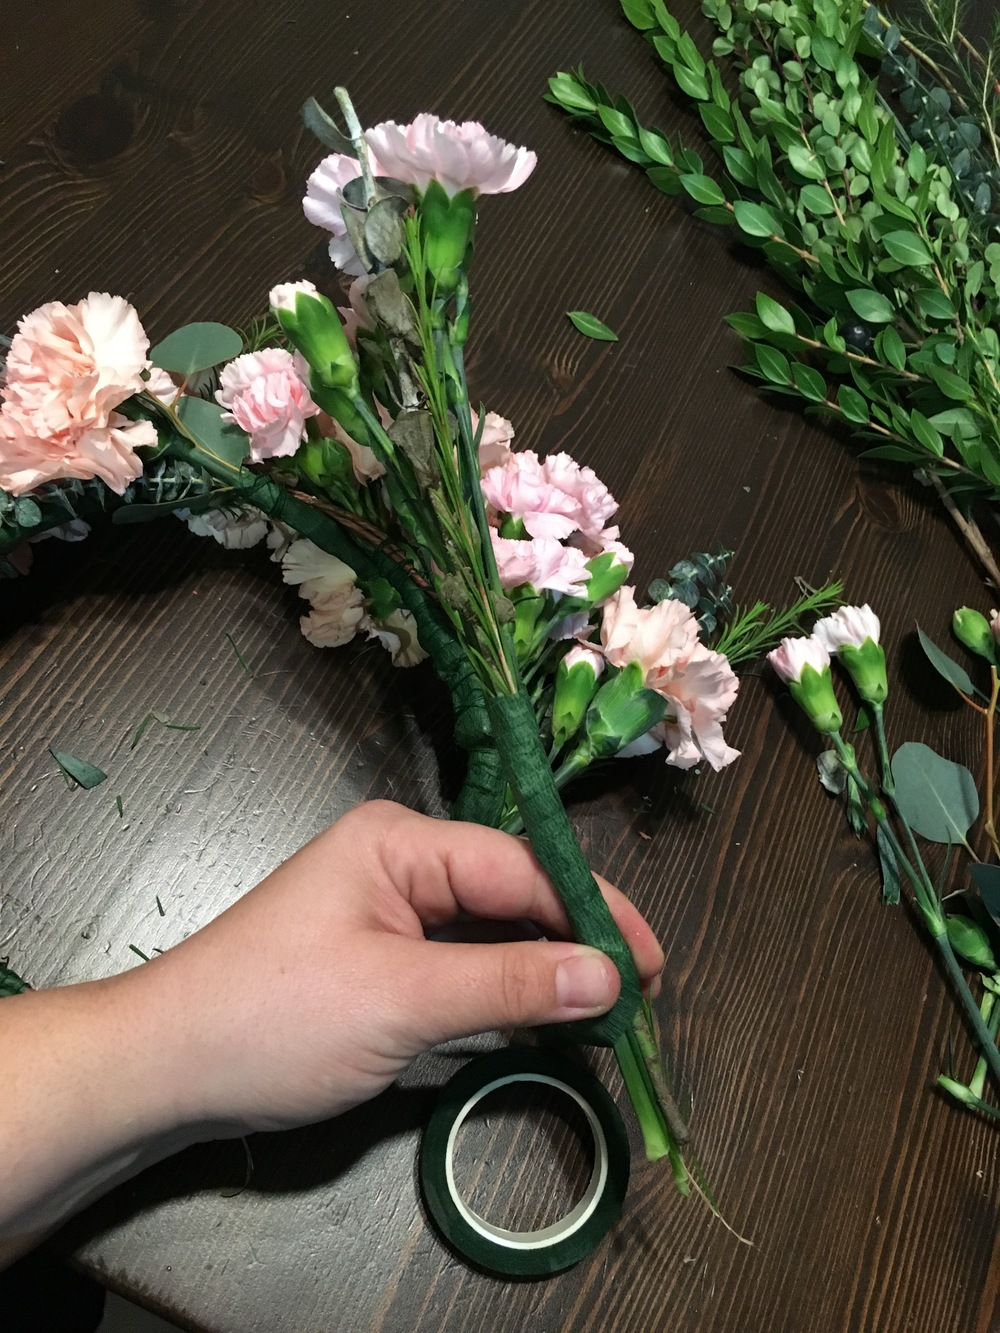 here's one of the bunches i plan on attaching last. i've made the stem longer to give it length. i still want the flowers to reach the top of the crown from the back.  make 2 like this so you can put one on each side. these will be attached at the end.